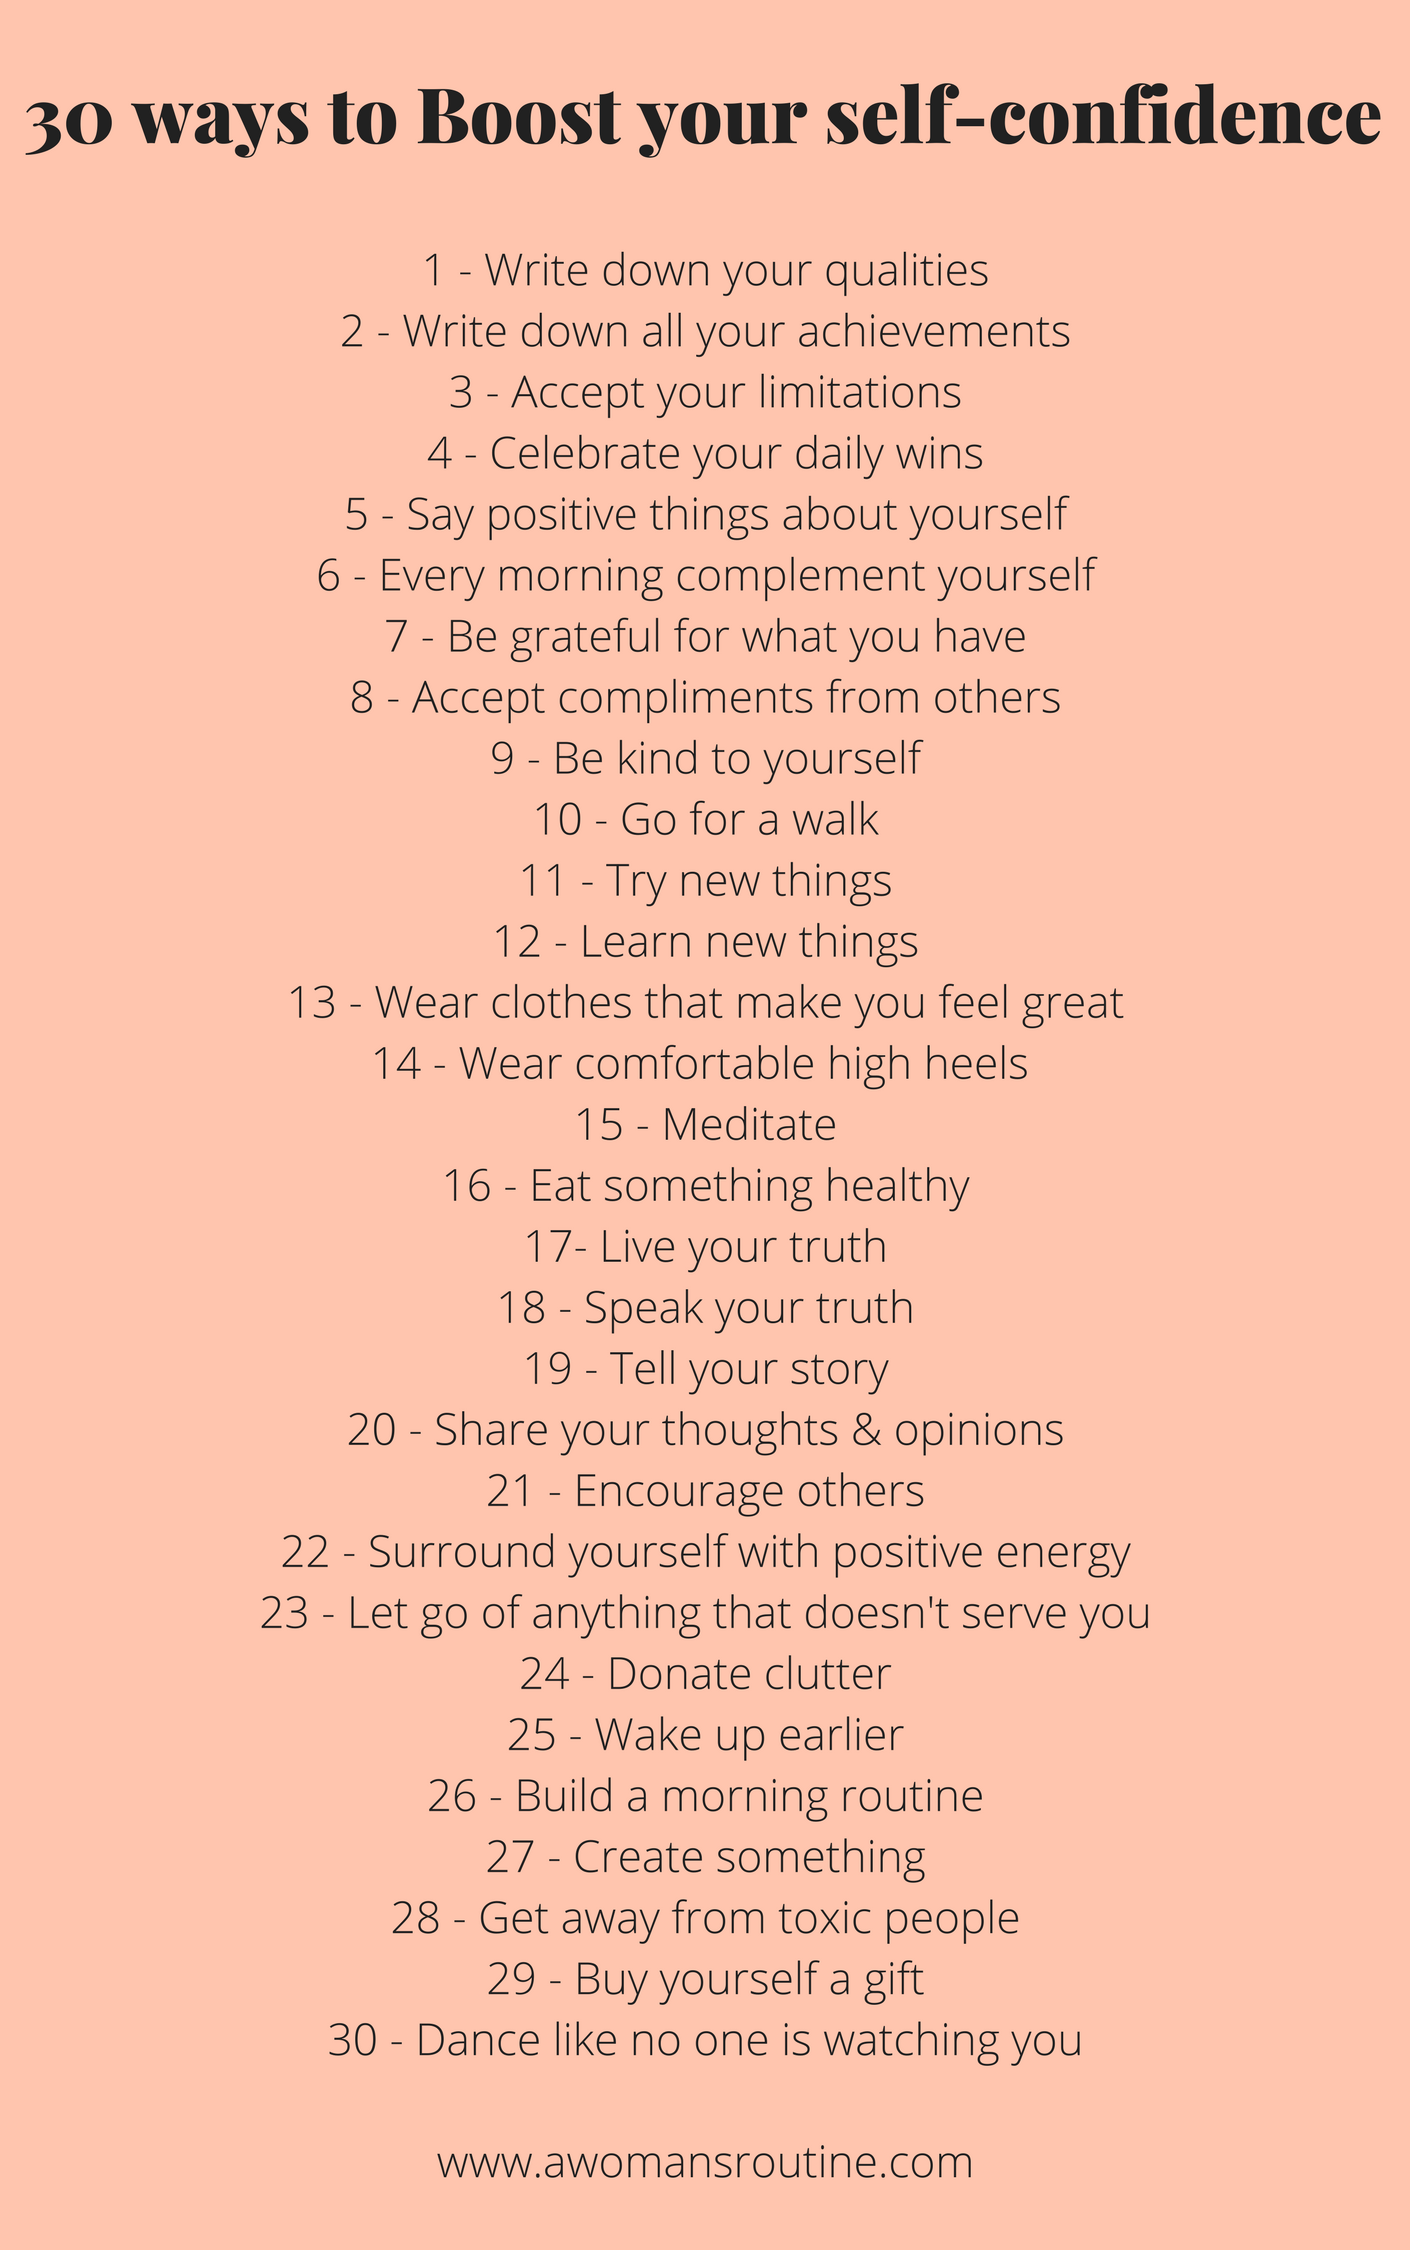 This Is A Worksheet With 30 Ways You Can Boost Your Self